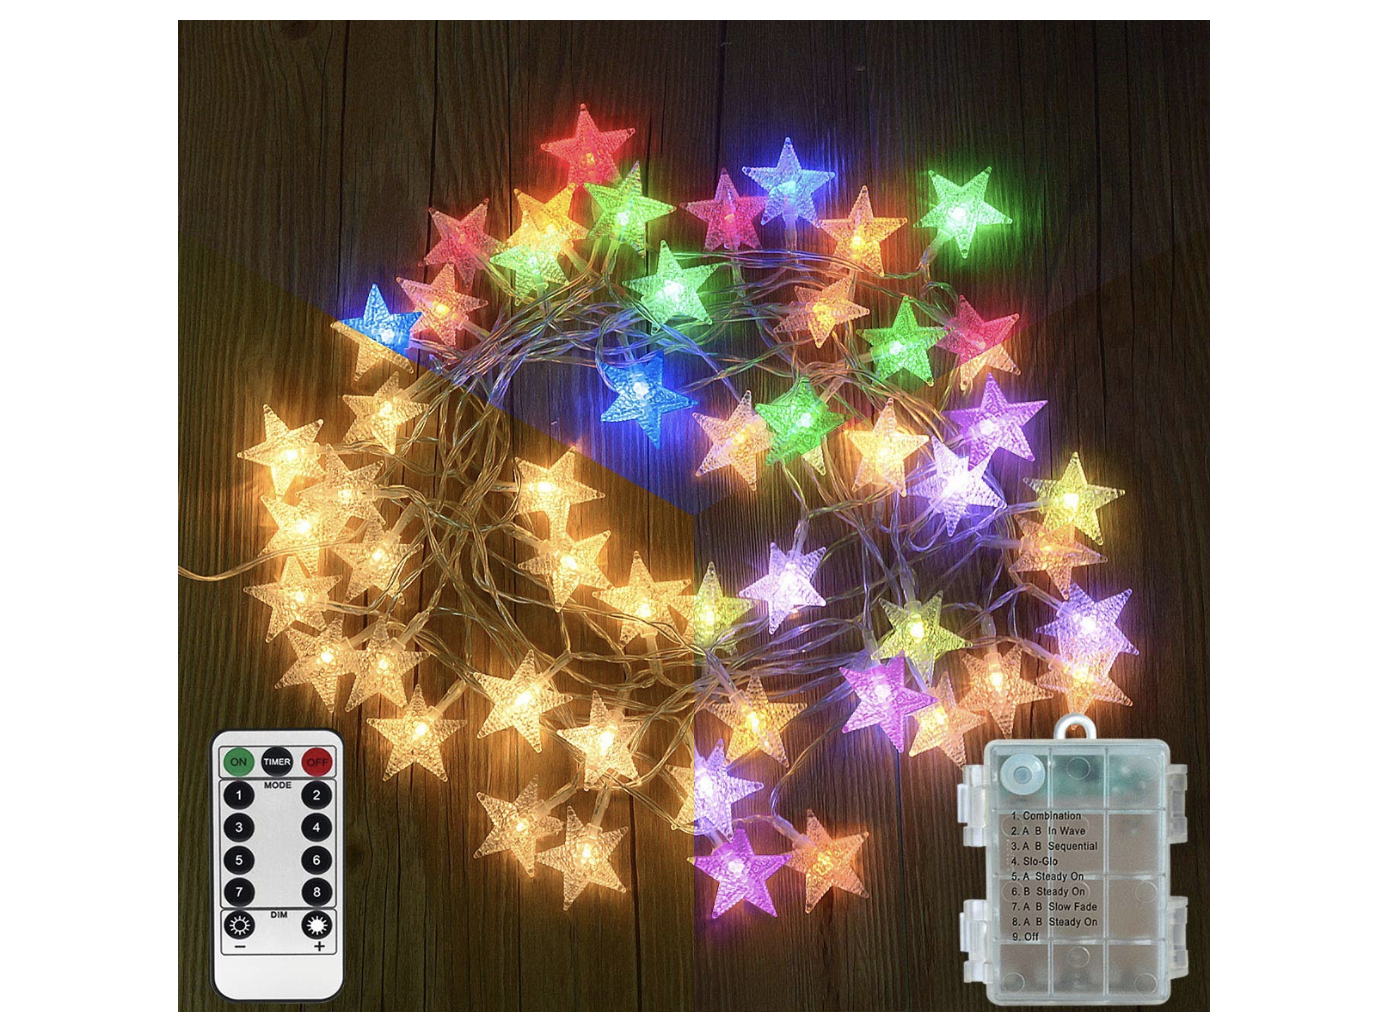 Top 10 Best Christmas Lights of 2019 Review